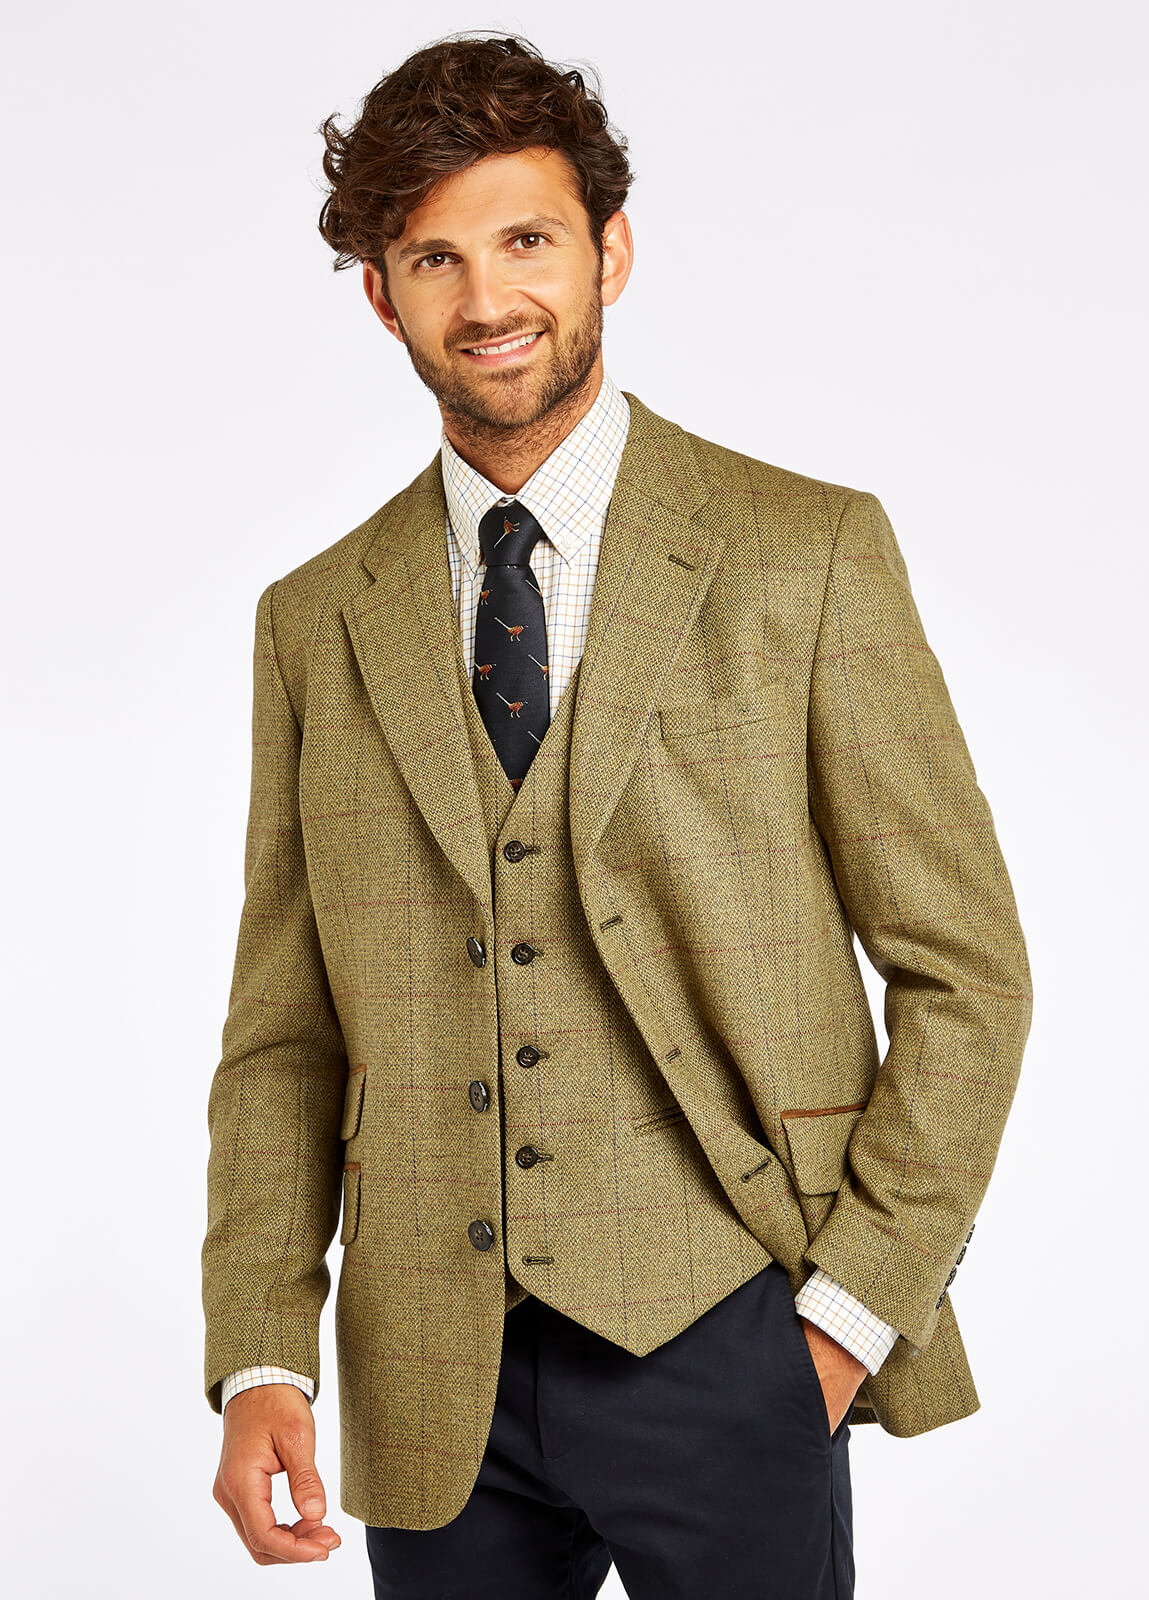 Rockingham Tweed Jacket - Beechwood